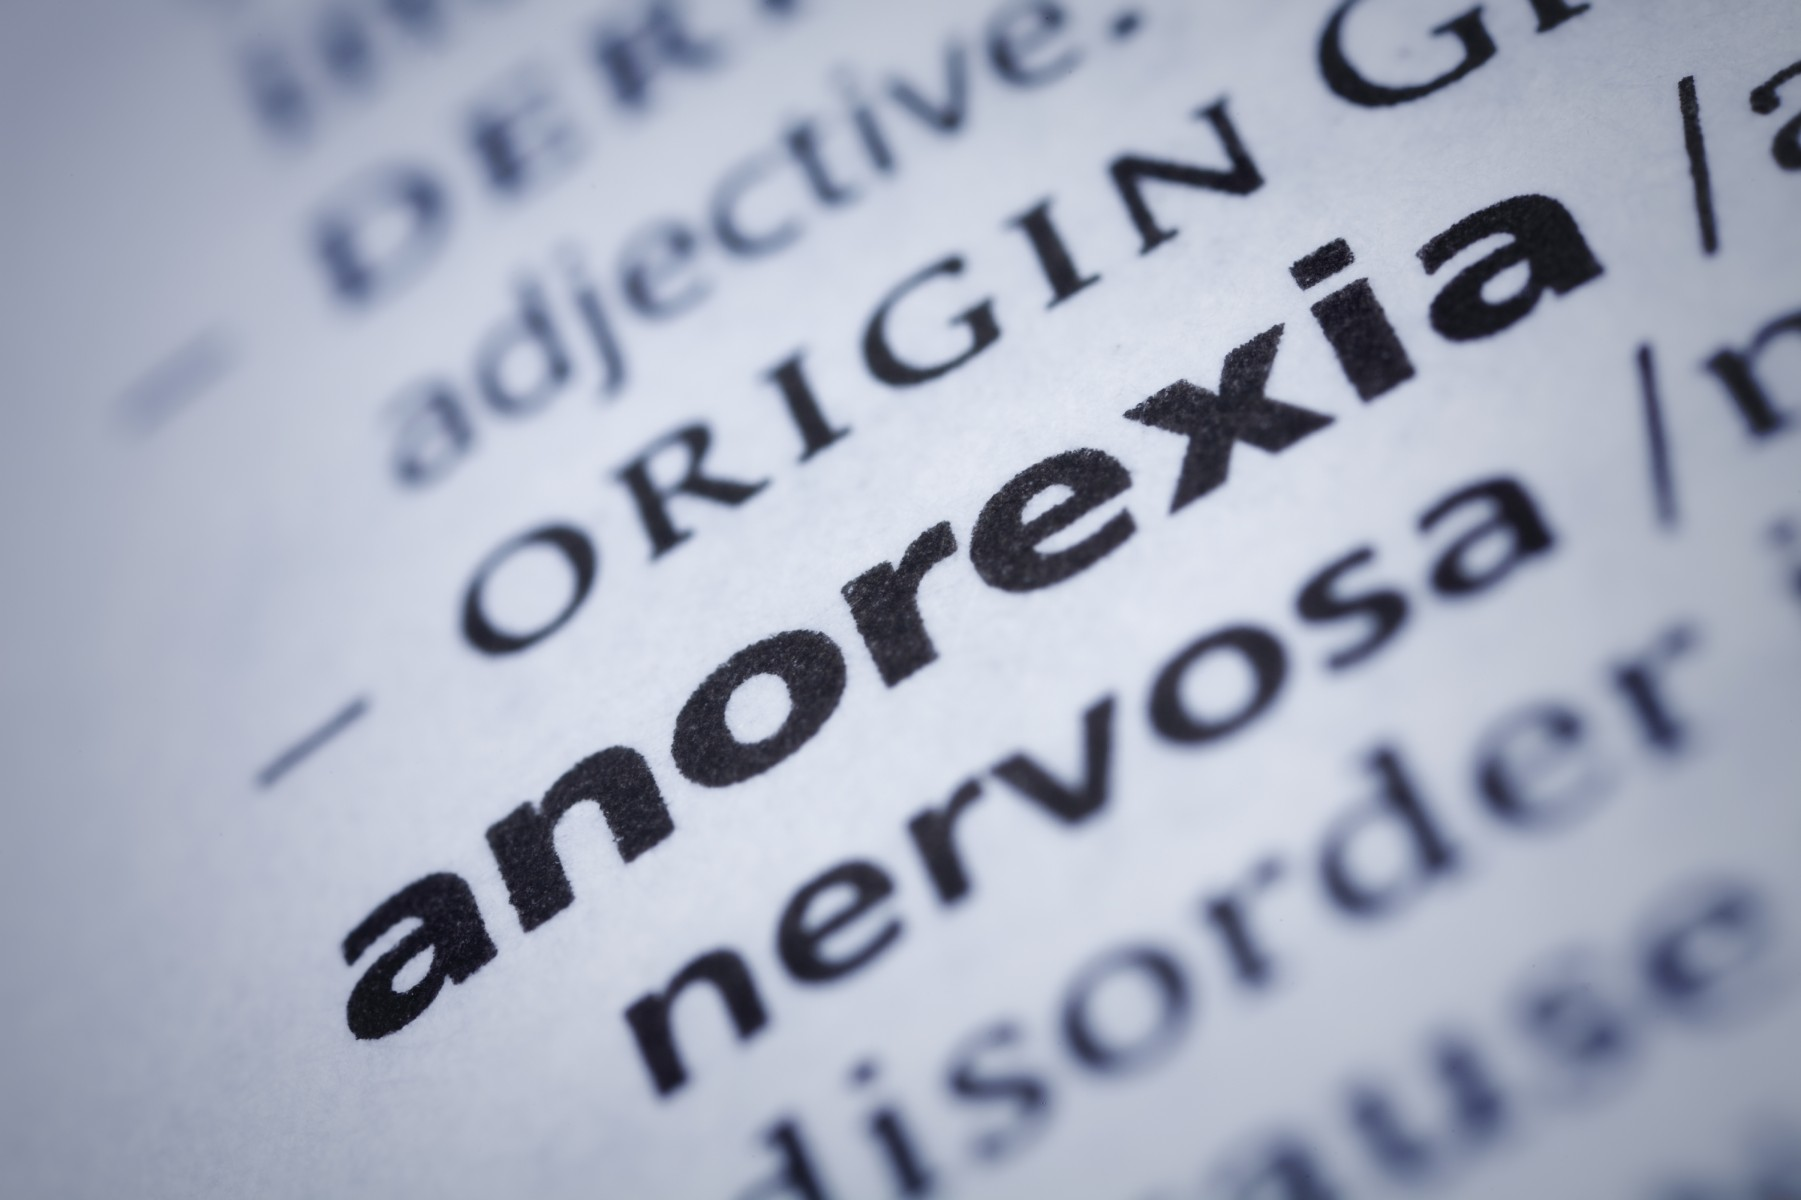 Inner voice of anorexia under investigation with help from people